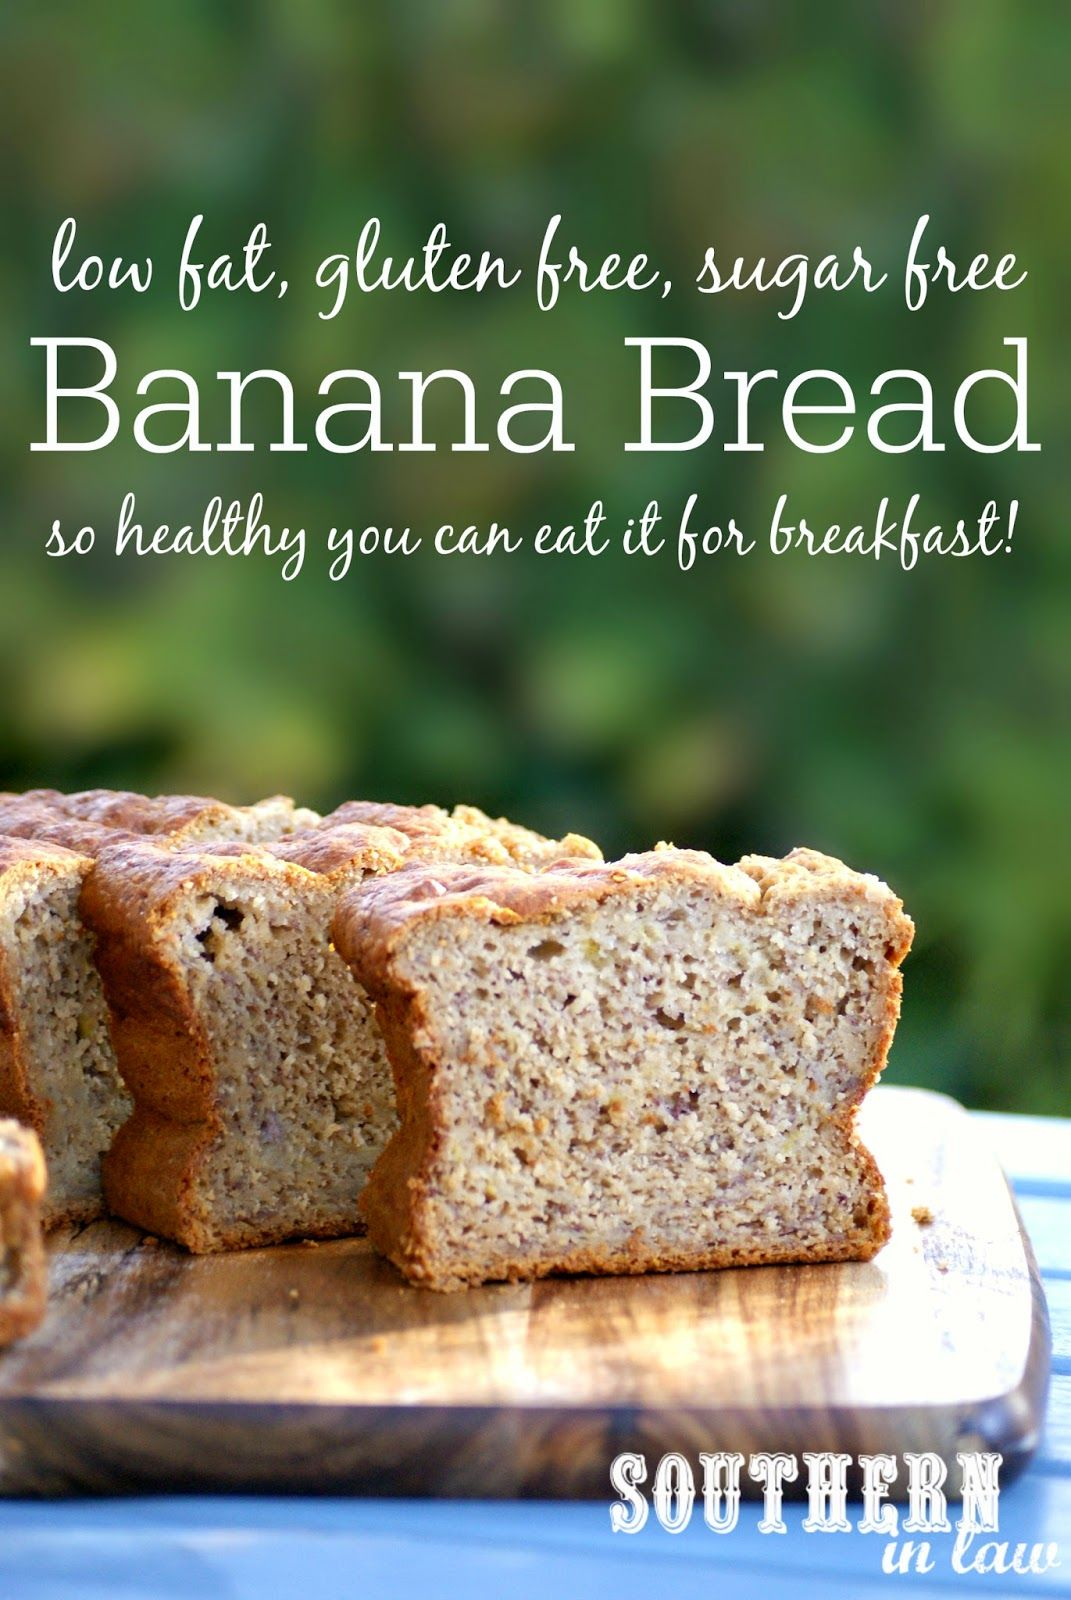 Recipe the best healthy banana bread low fat banana bread low fat banana bread recipe low fat gluten free low calories sugar free healthy clean eating friendly breakfast banana bread forumfinder